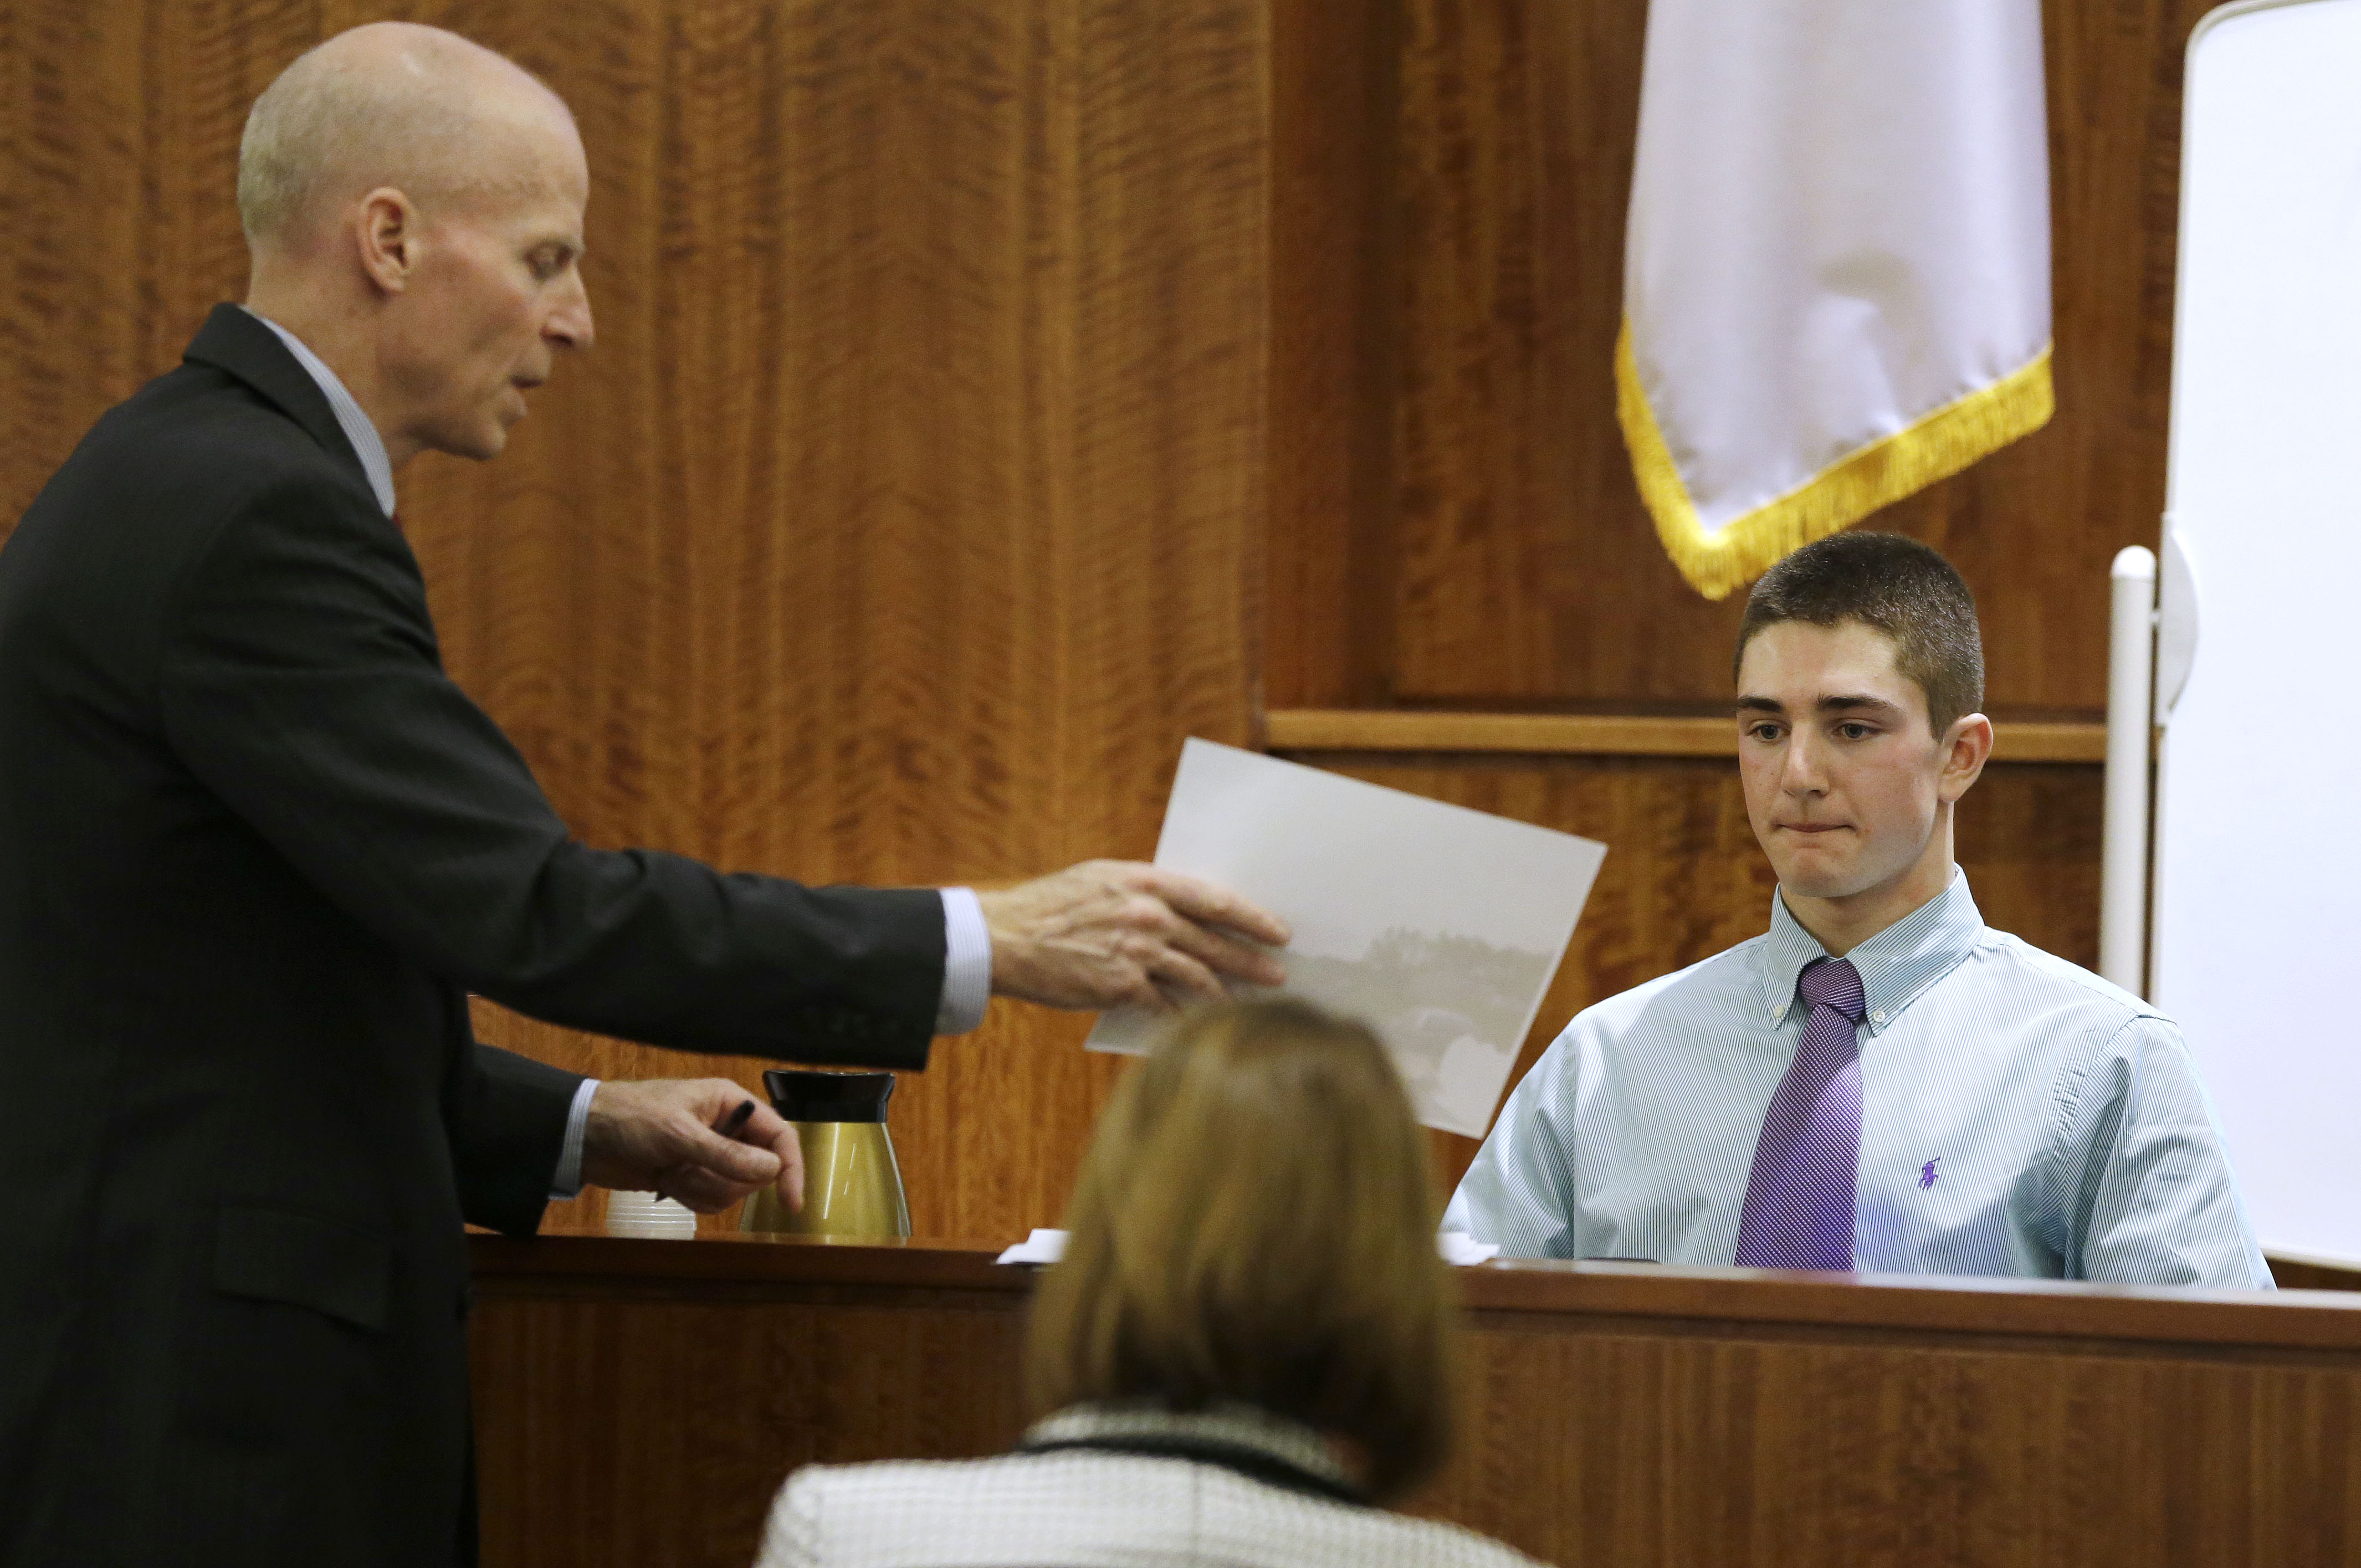 William McCauley, left, shows a witness a photograph. (AP)